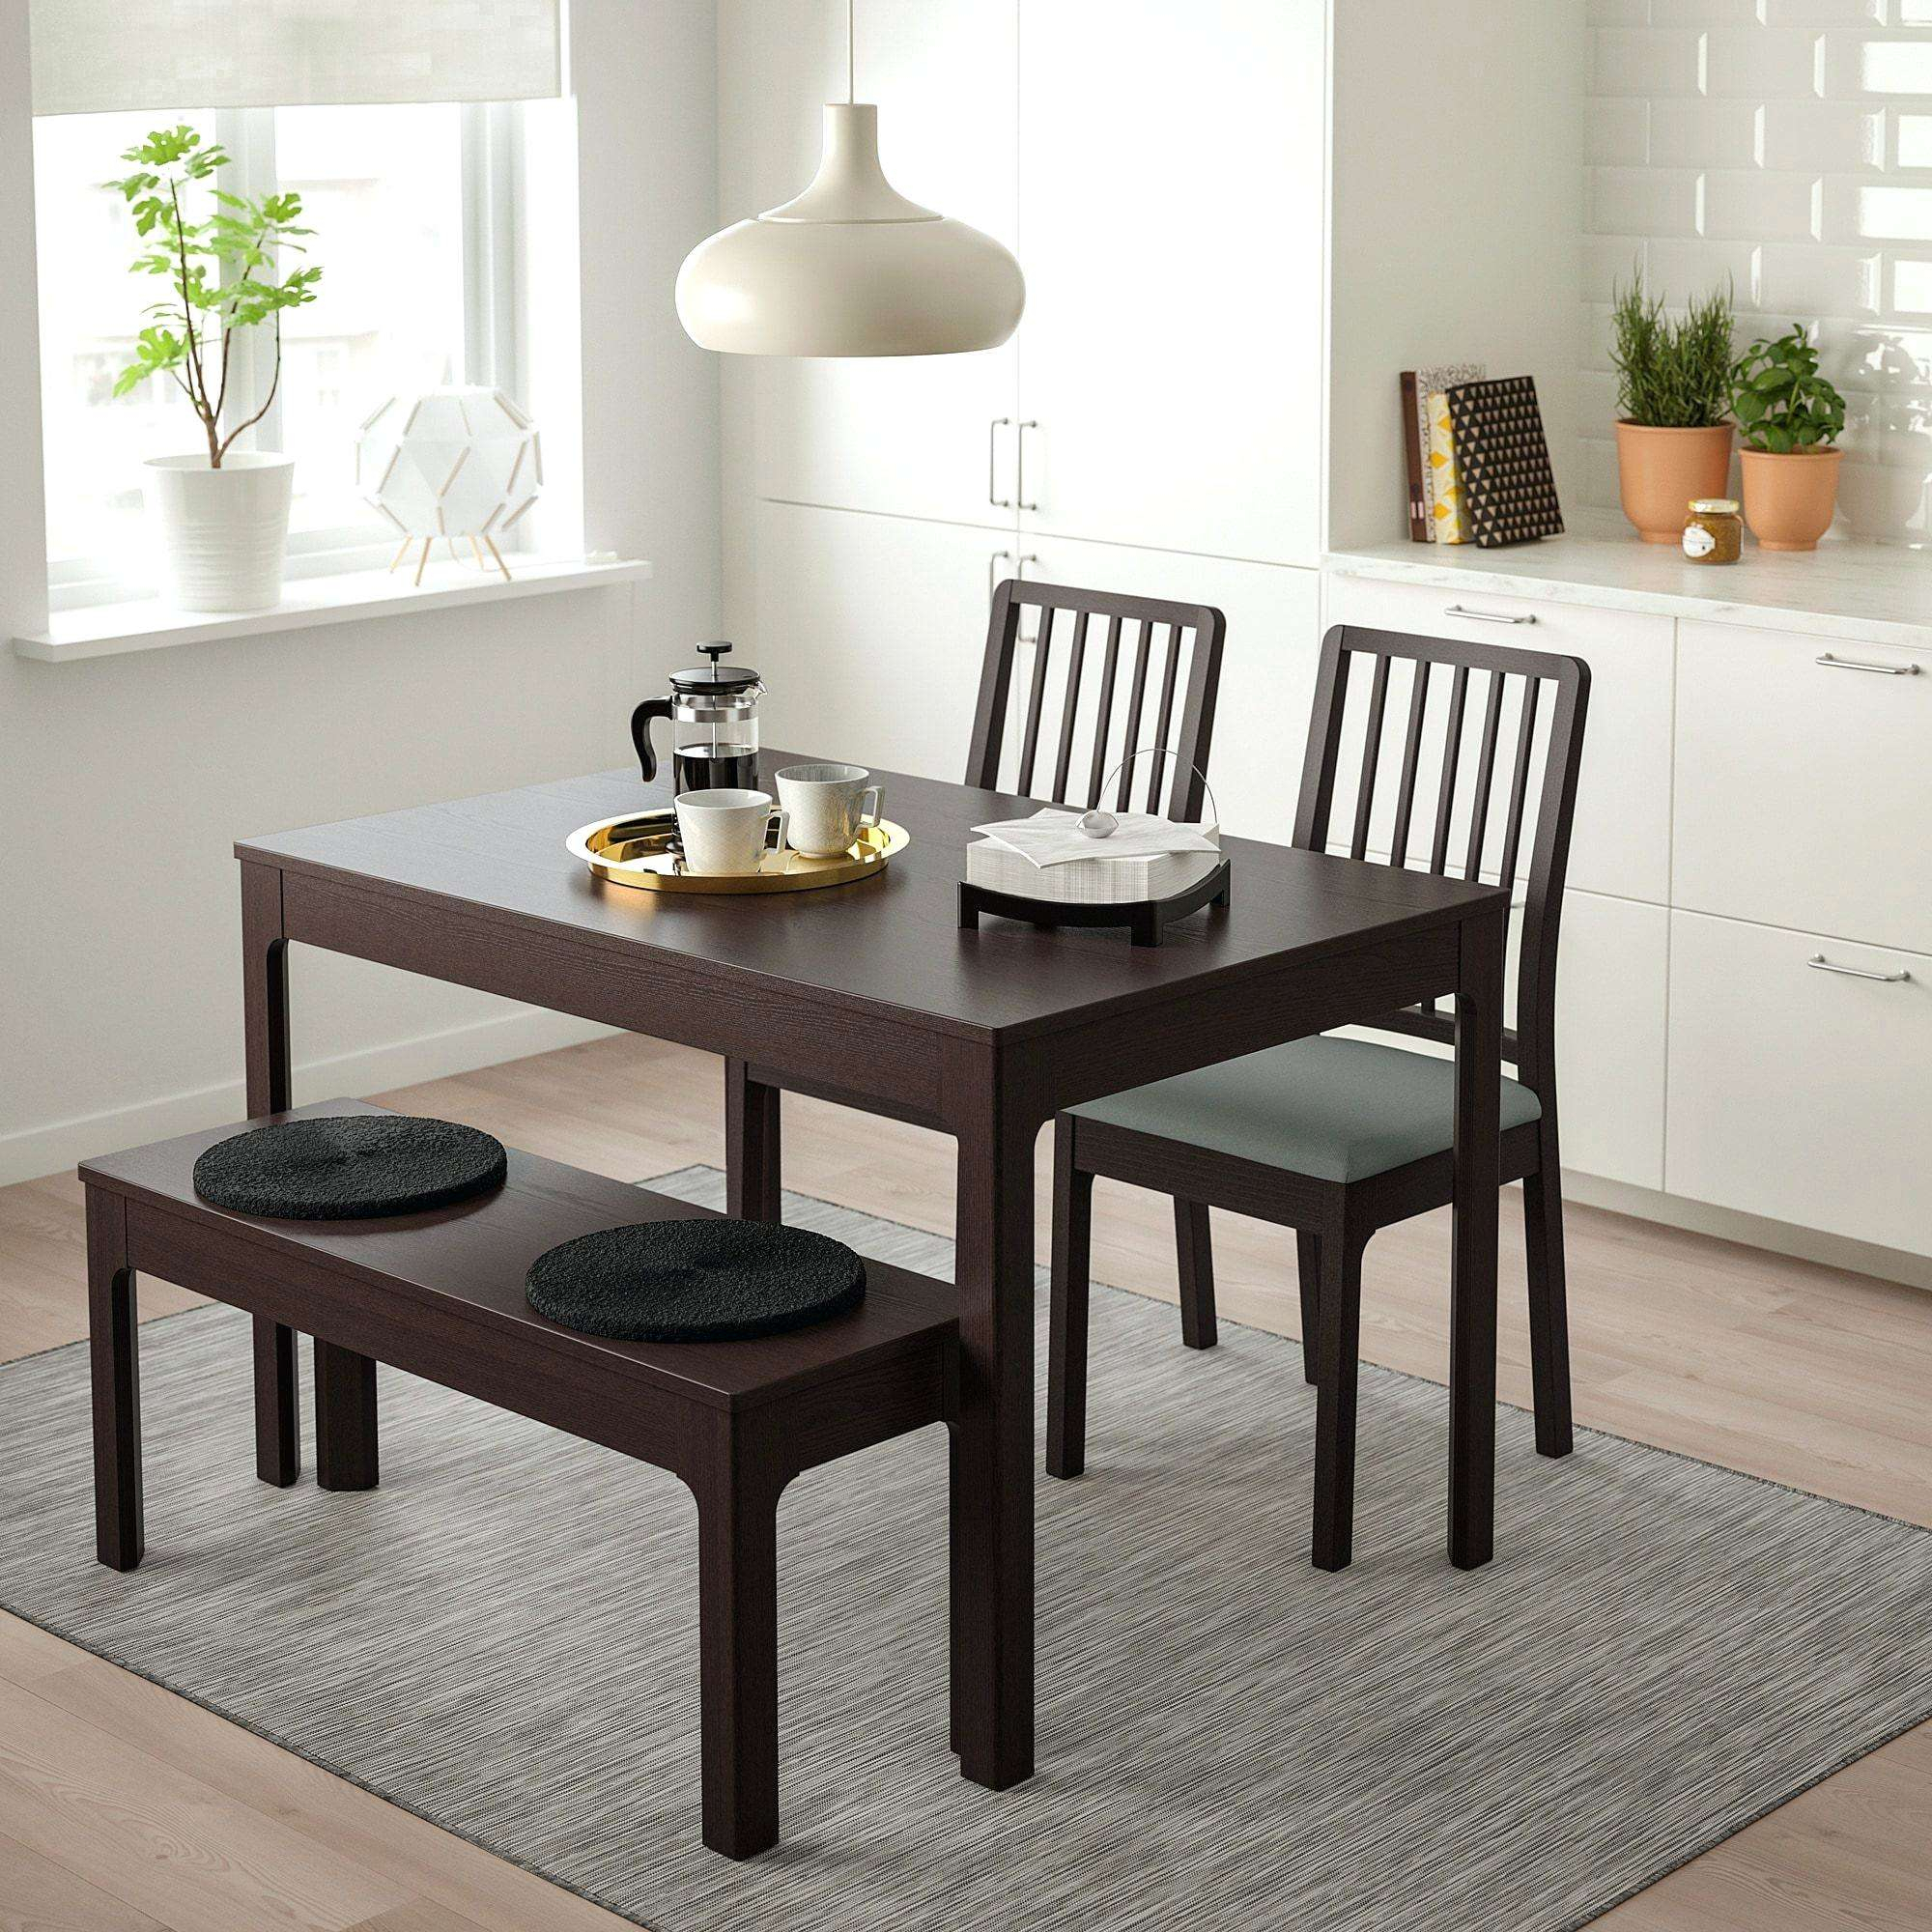 White Dining Table Black Chairs Pertaining To Most Recent Salvaged Black Shayne Drop Leaf Kitchen Tables (View 19 of 25)